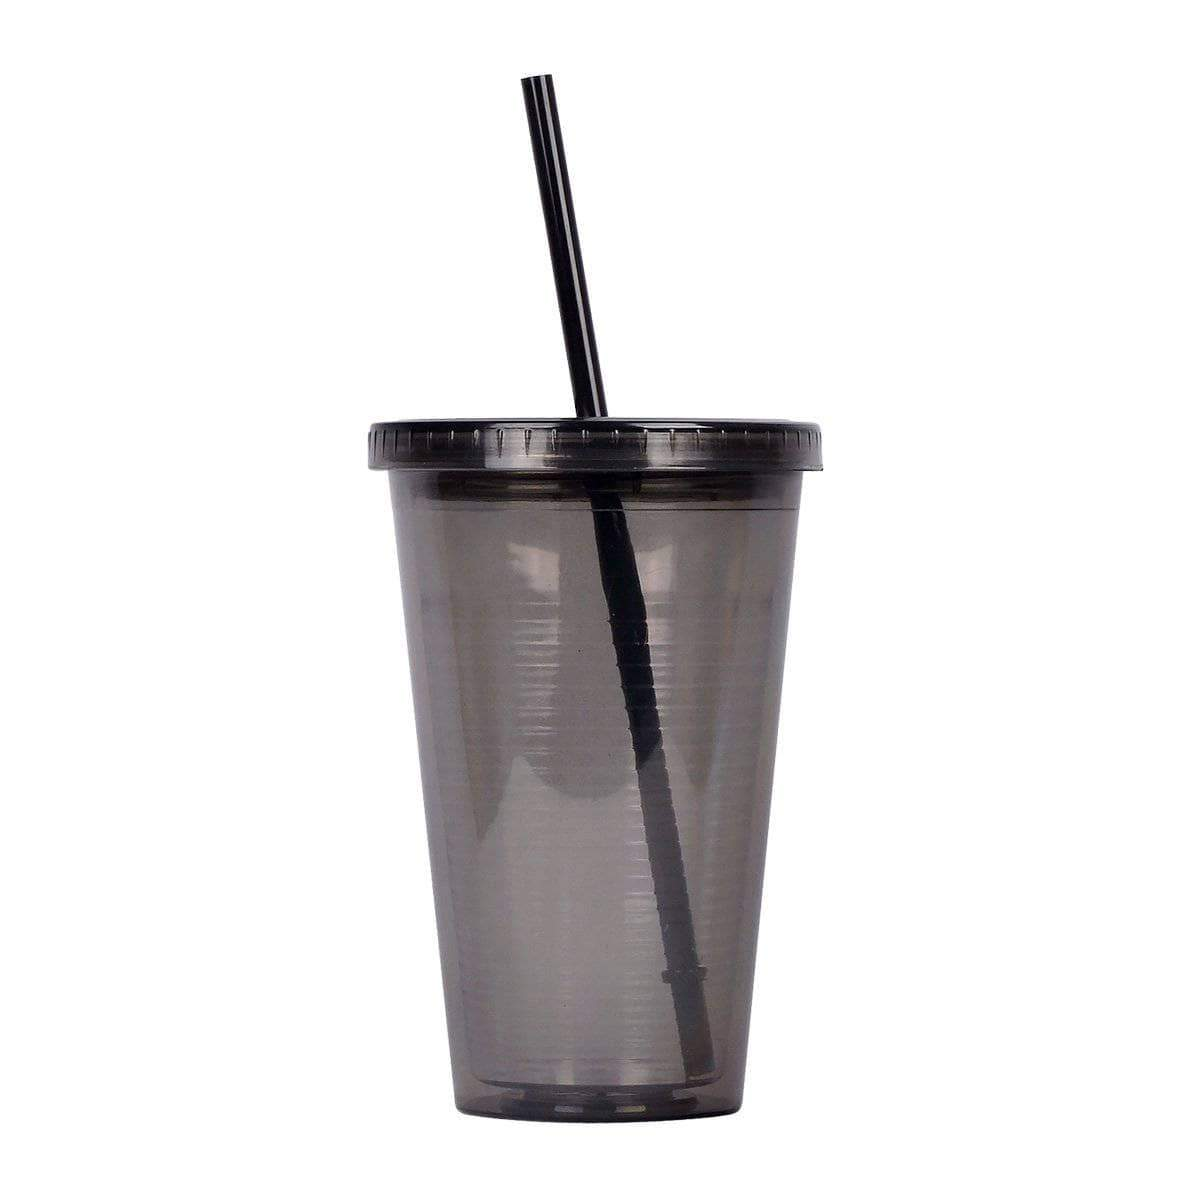 Geo Bottles Tumblers Black 16oz Double Wall Cup with Straw - BPA Free